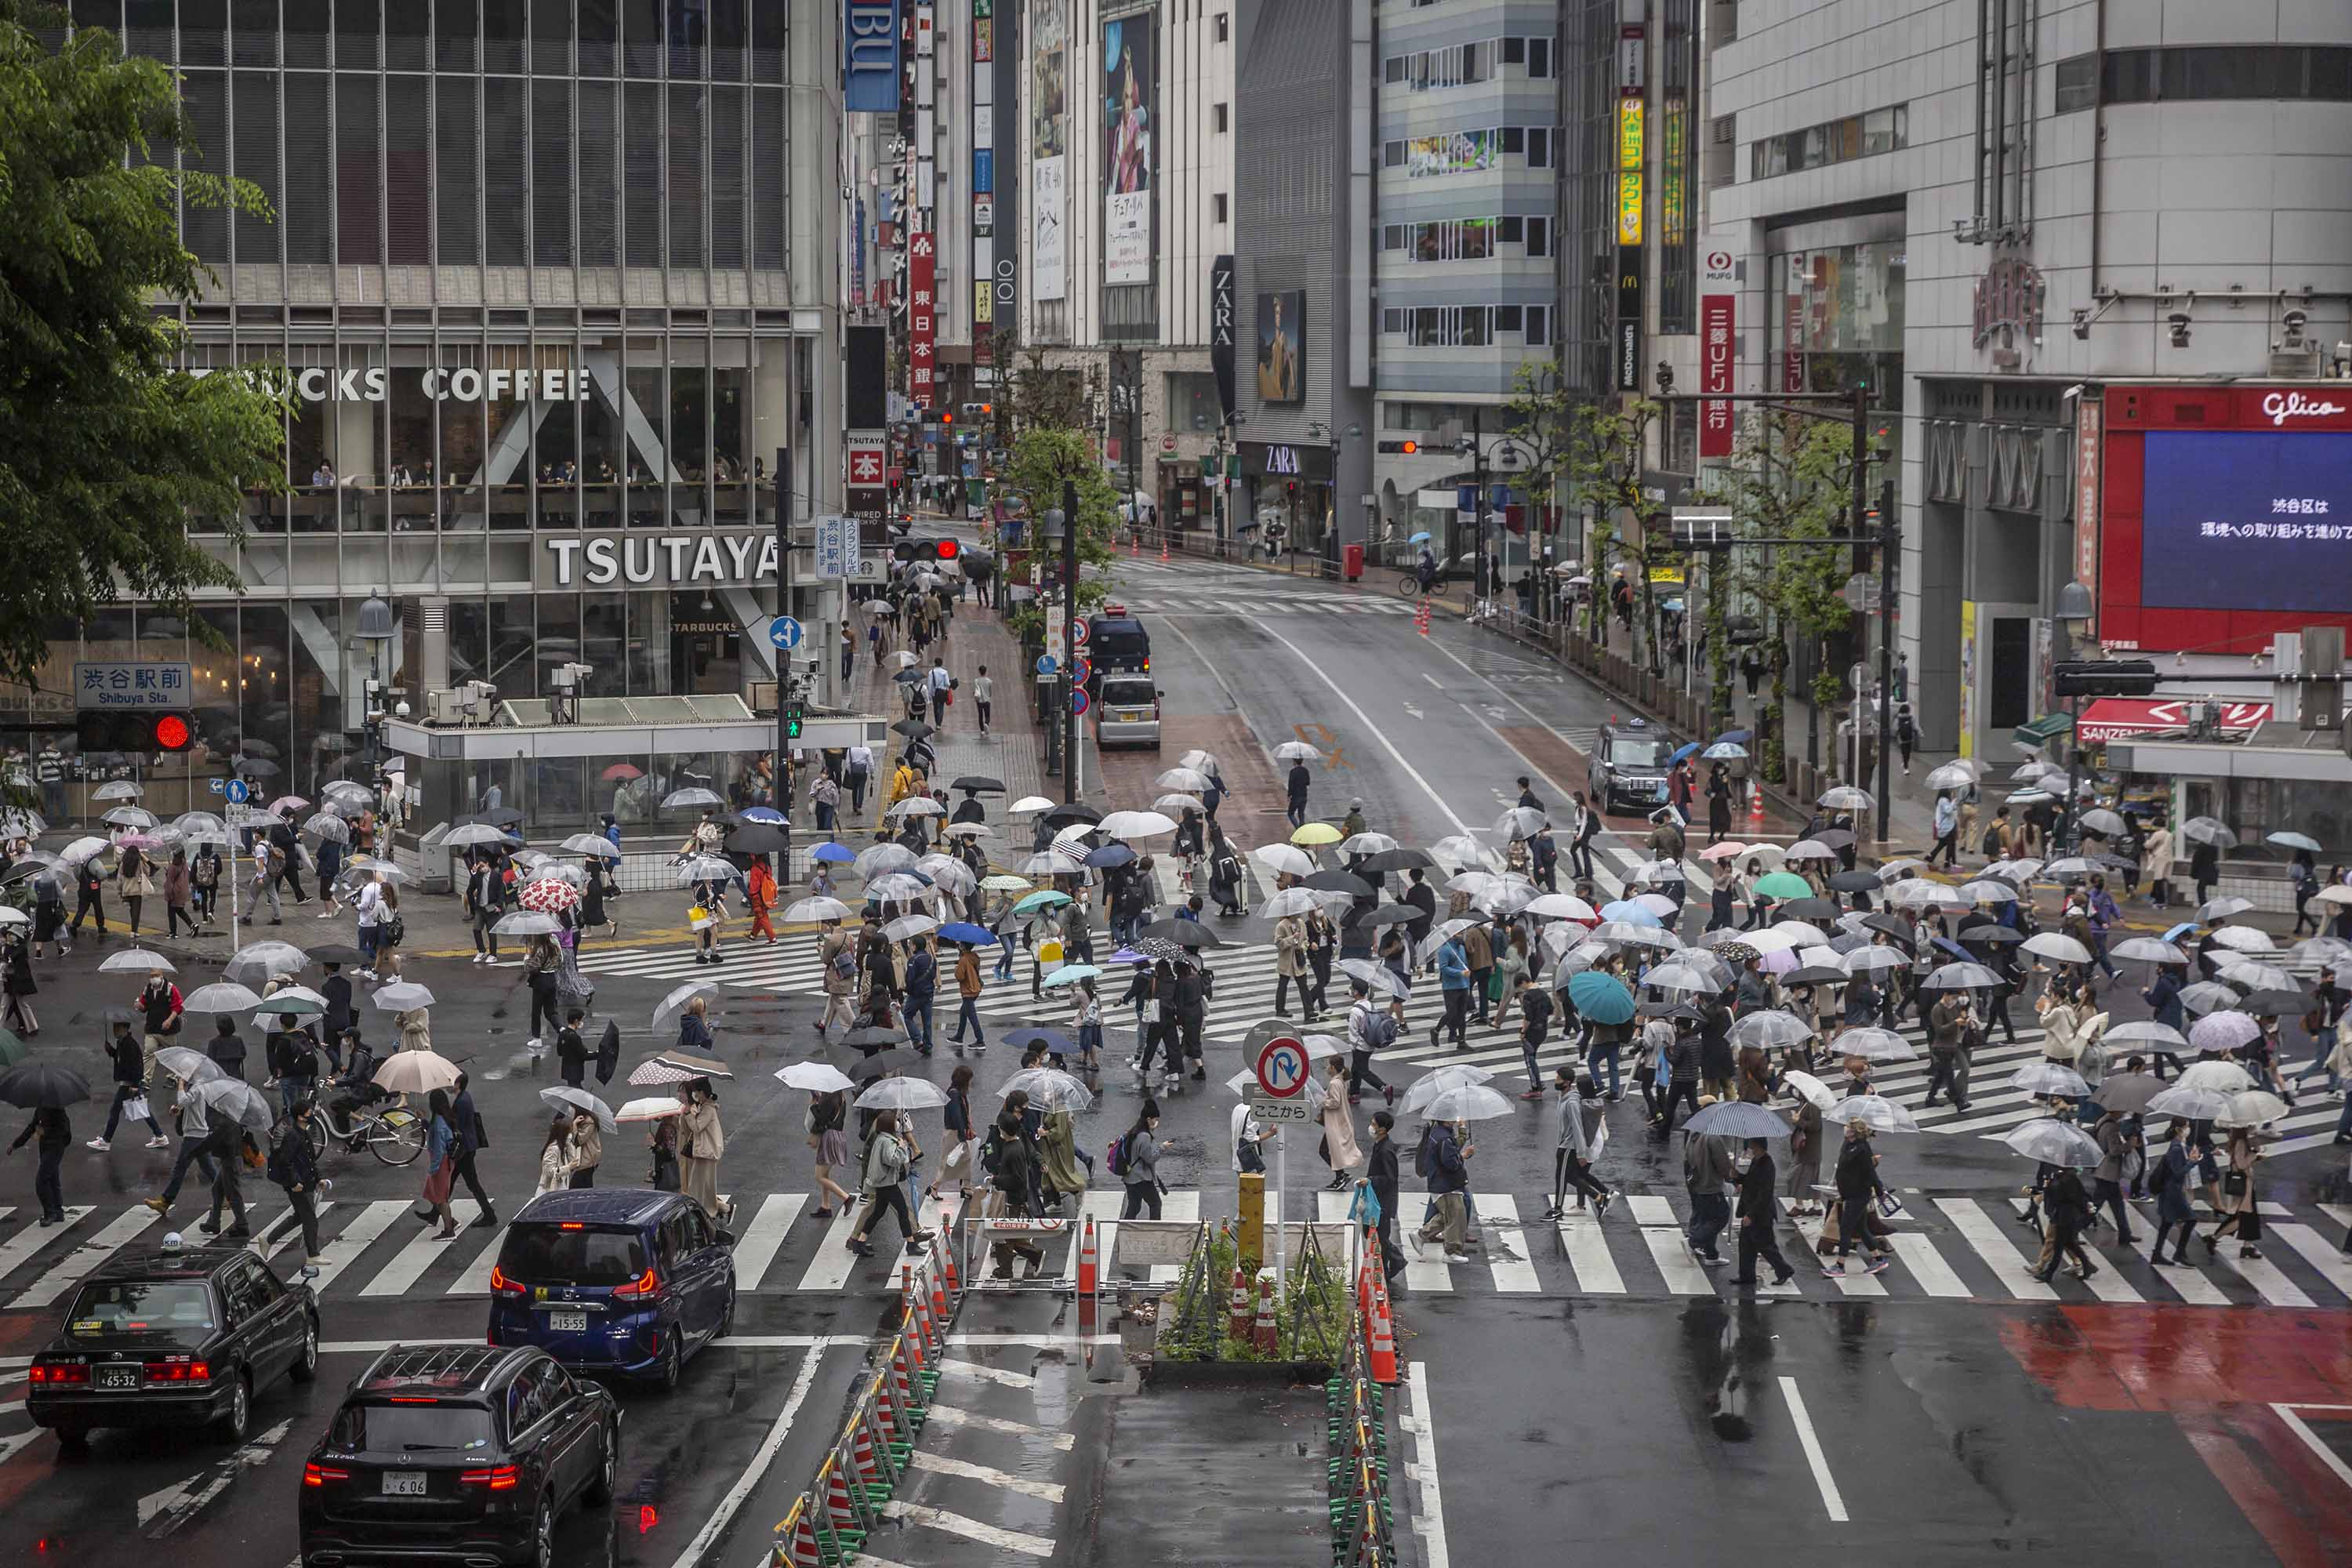 Pedestrians are seen at Shibuya crossing in Tokyo, Japan, on April 29.